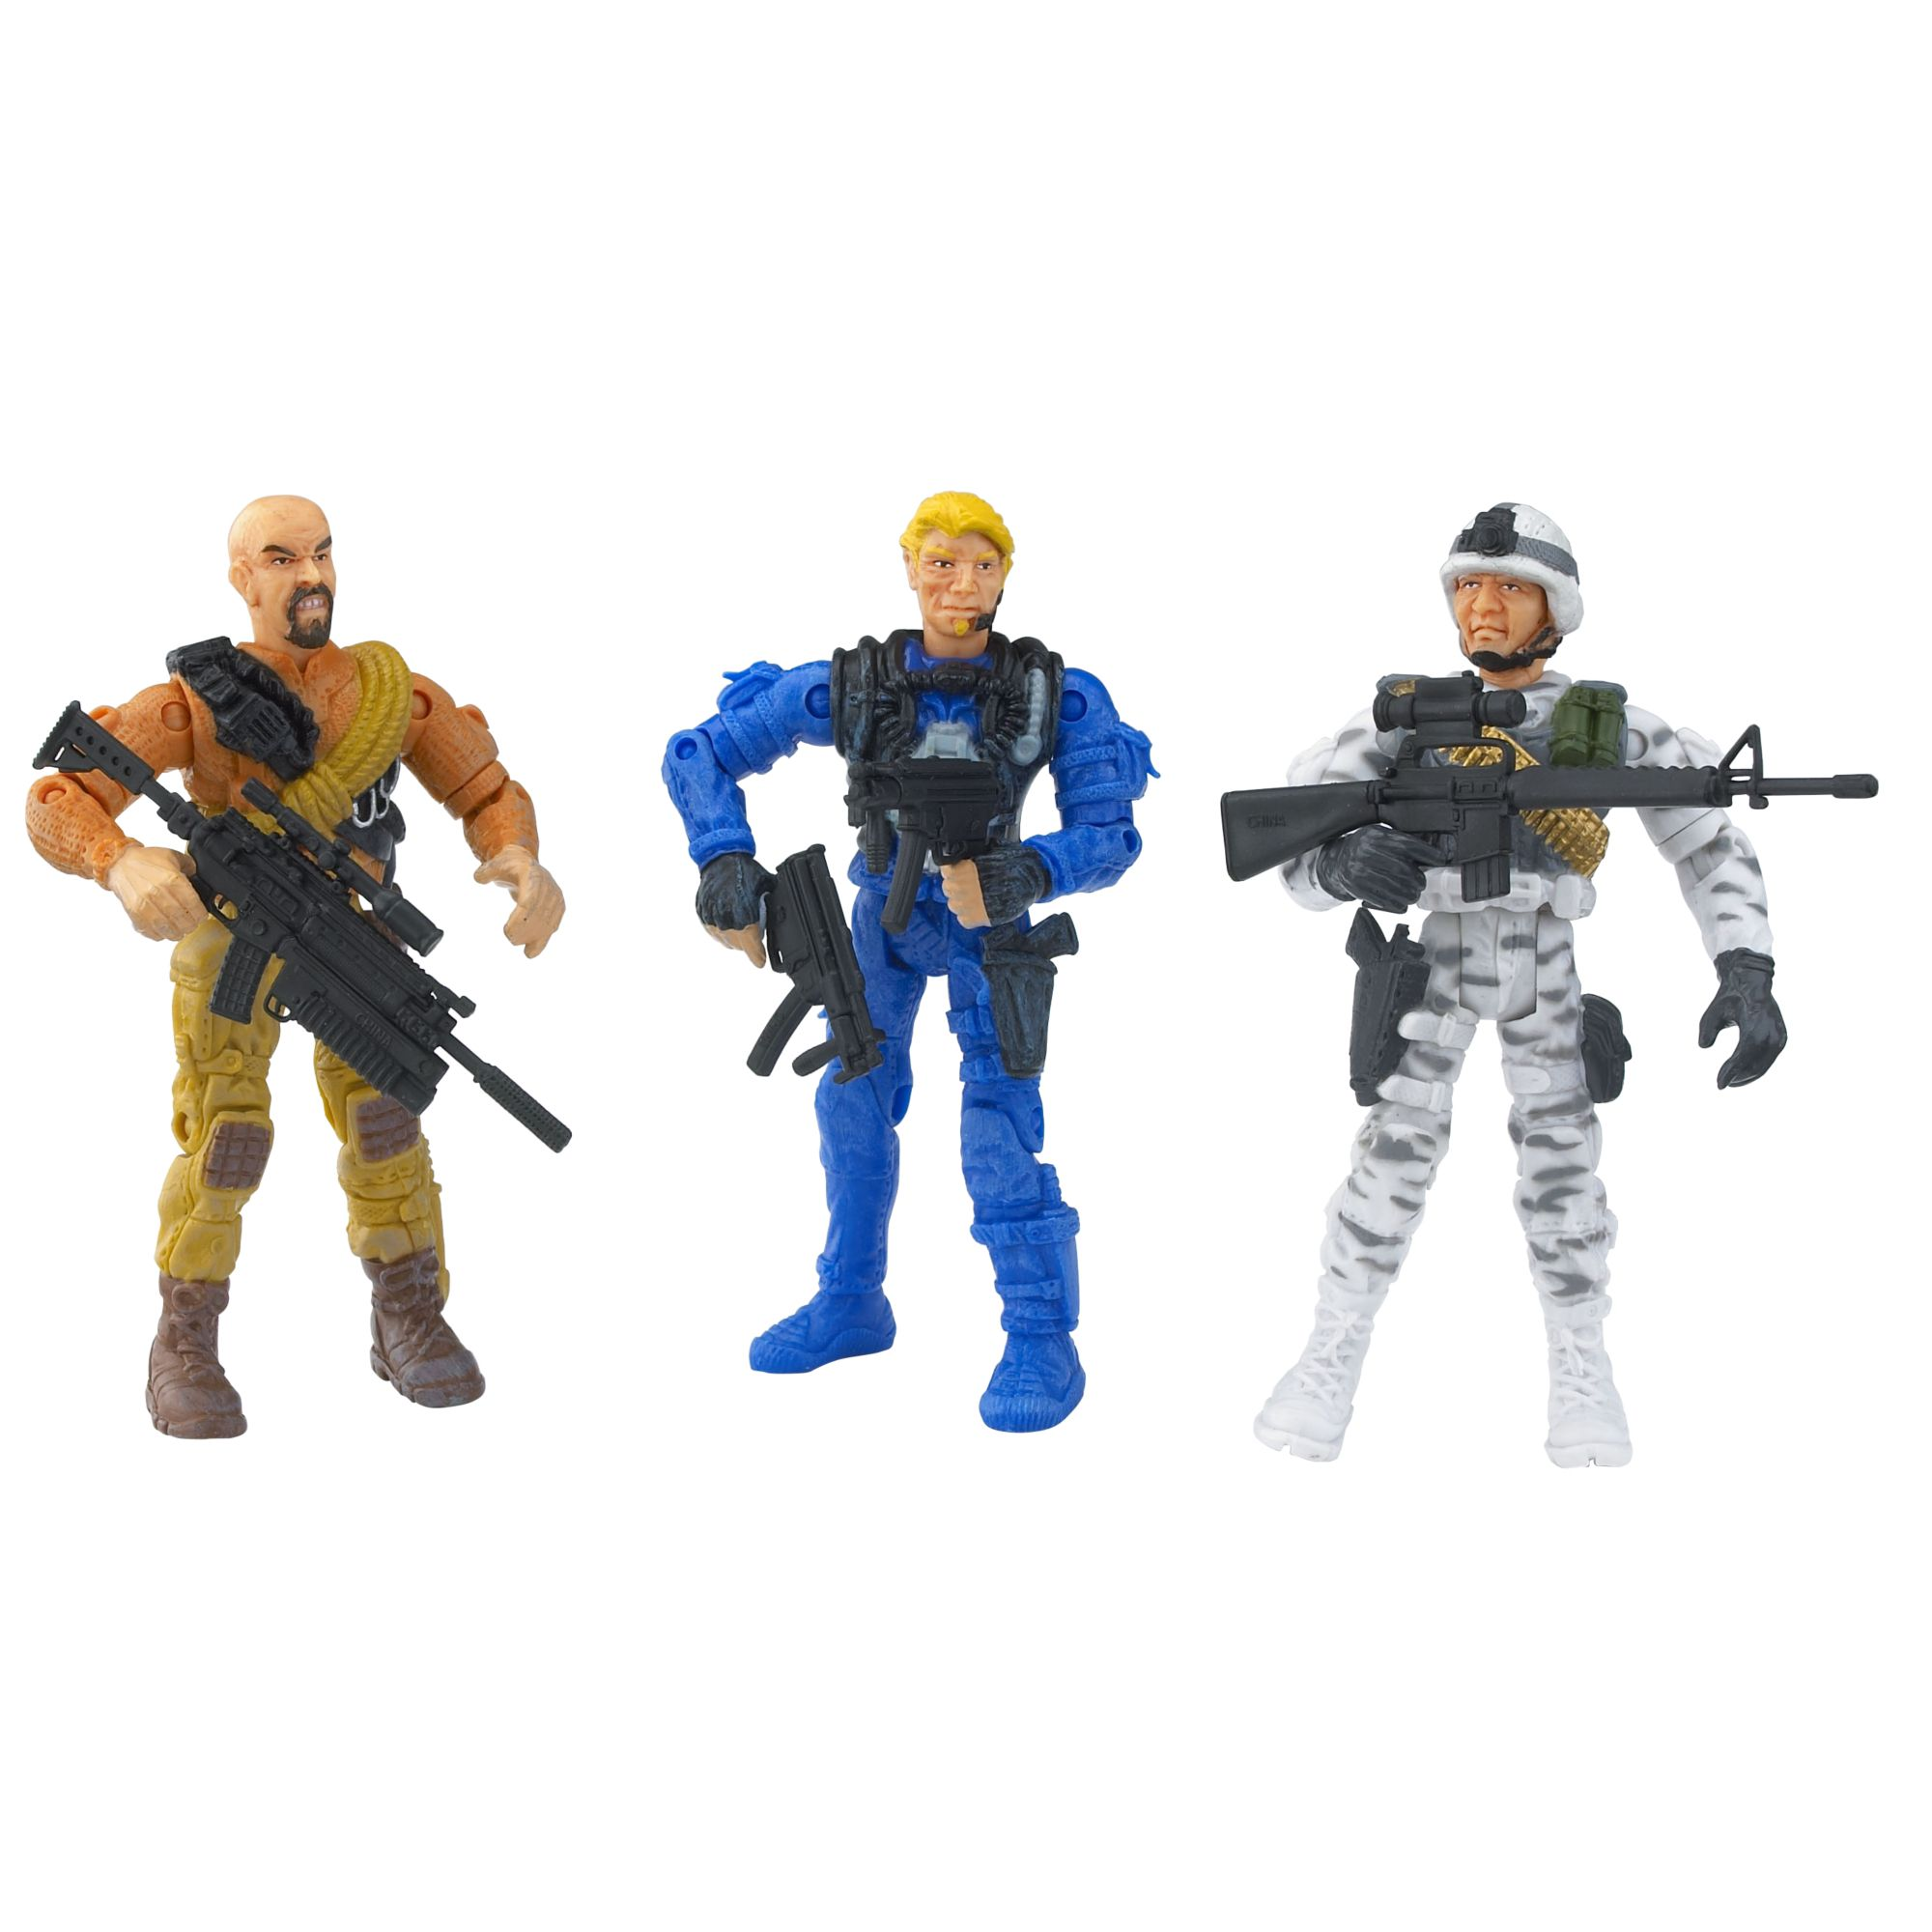 Hamleys pack of 3 soldiers